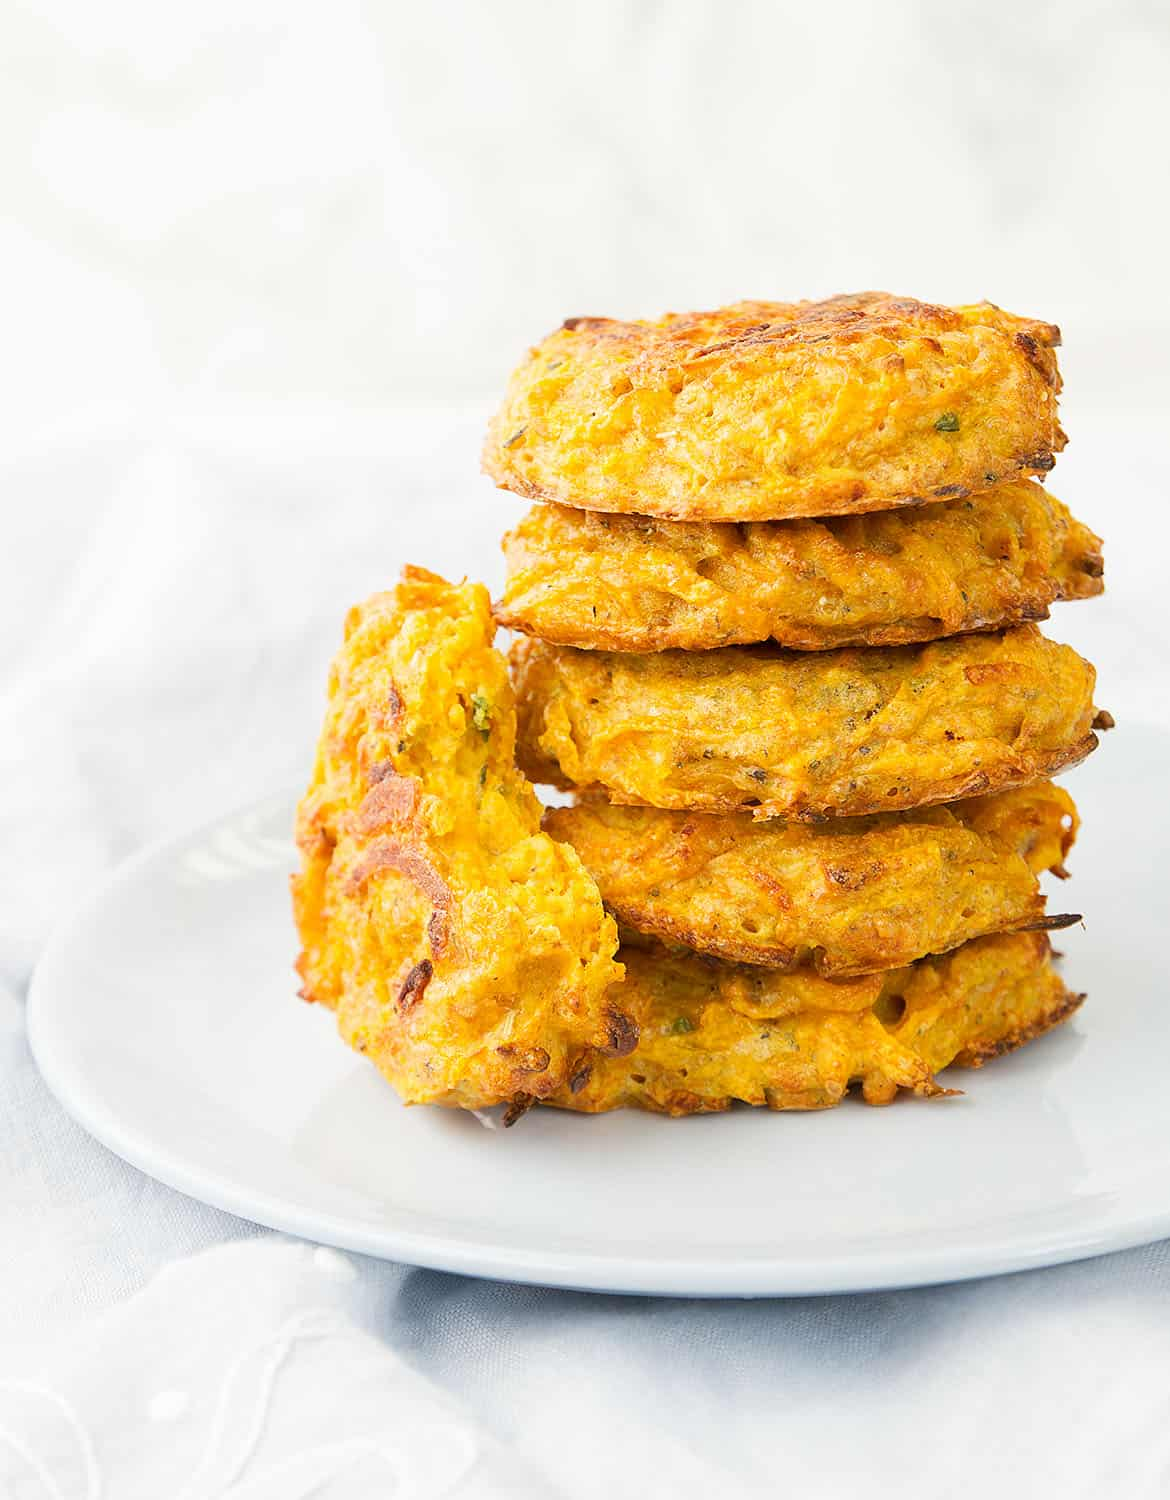 BAKED BUTTERNUT SQUASH FRITTERS WITH PARMESAN